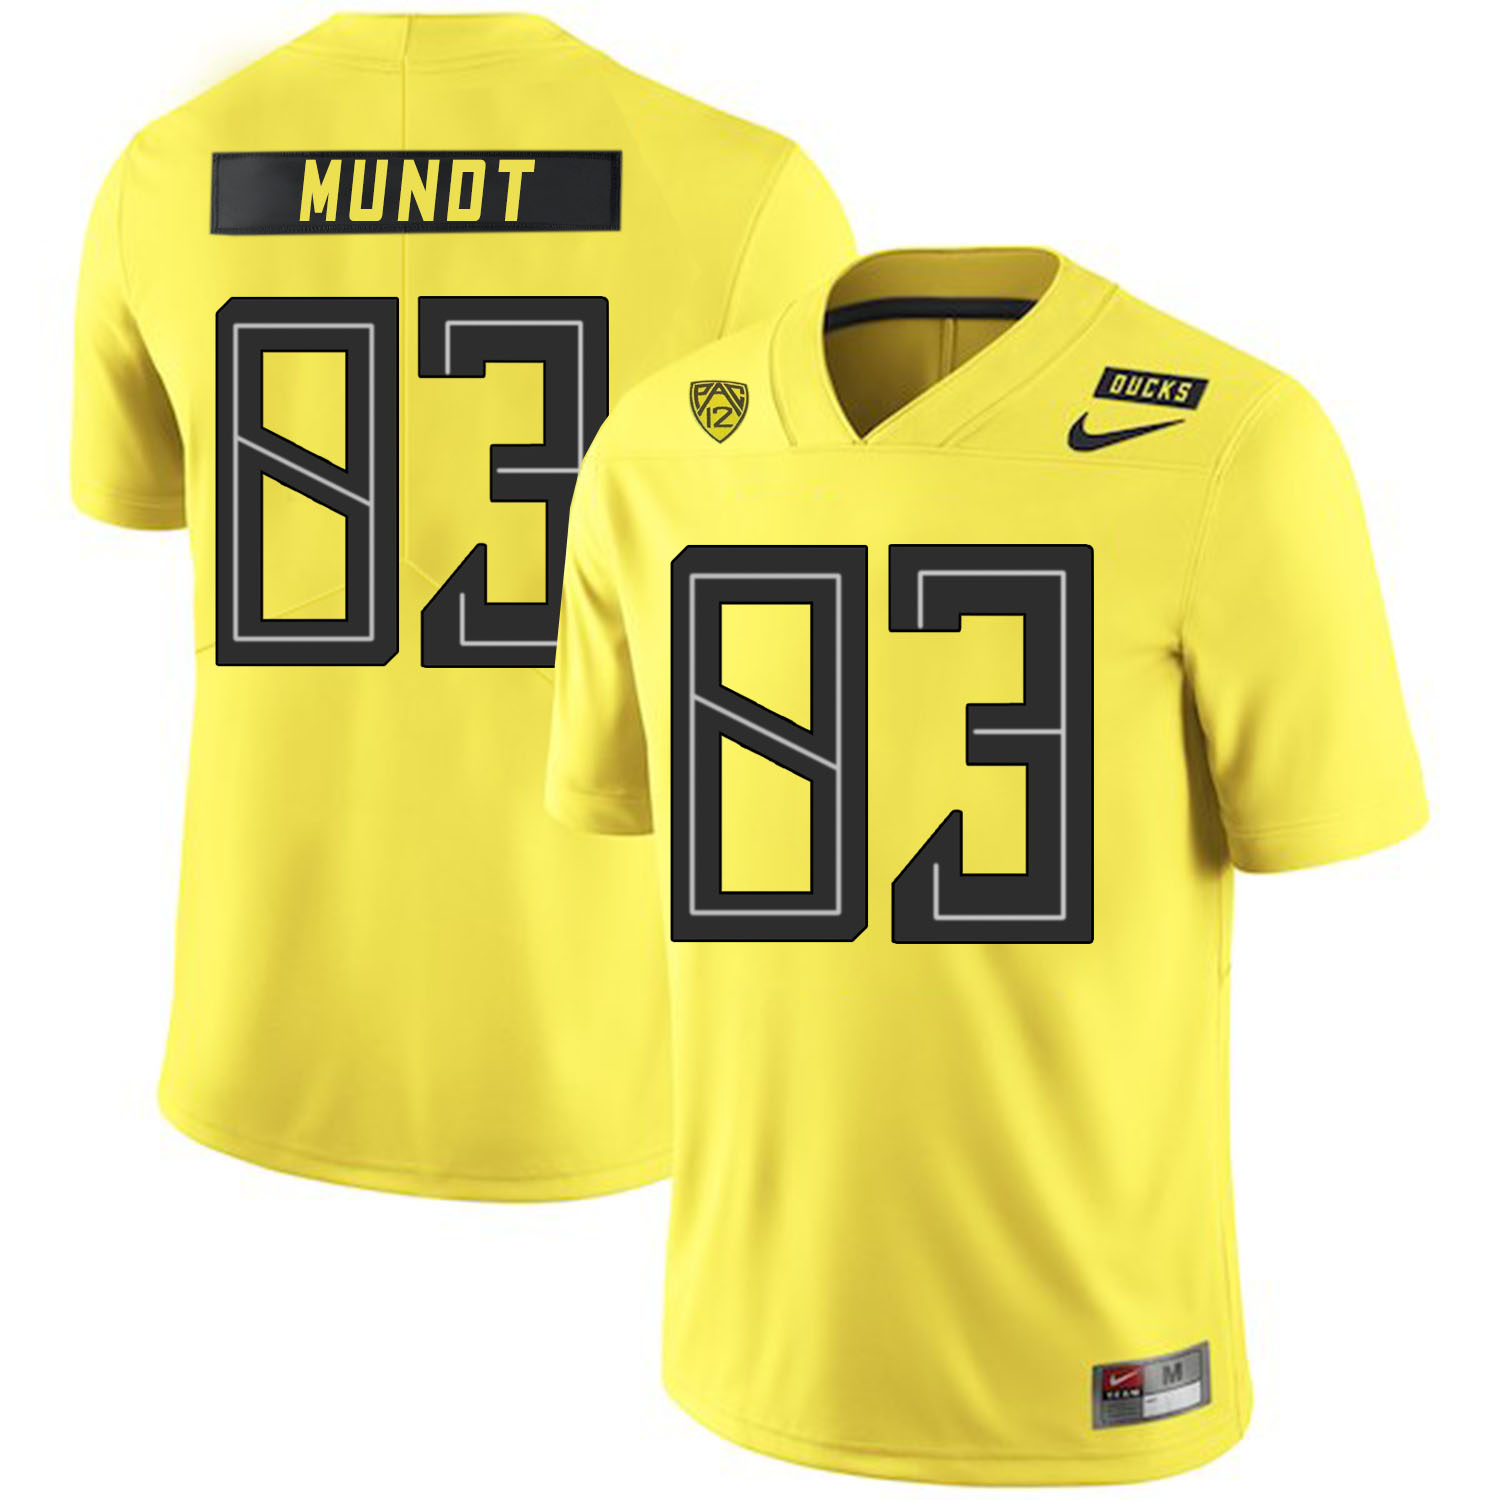 Oregon Ducks 83 Johnny Mundt Yellow Nike College Football Jersey